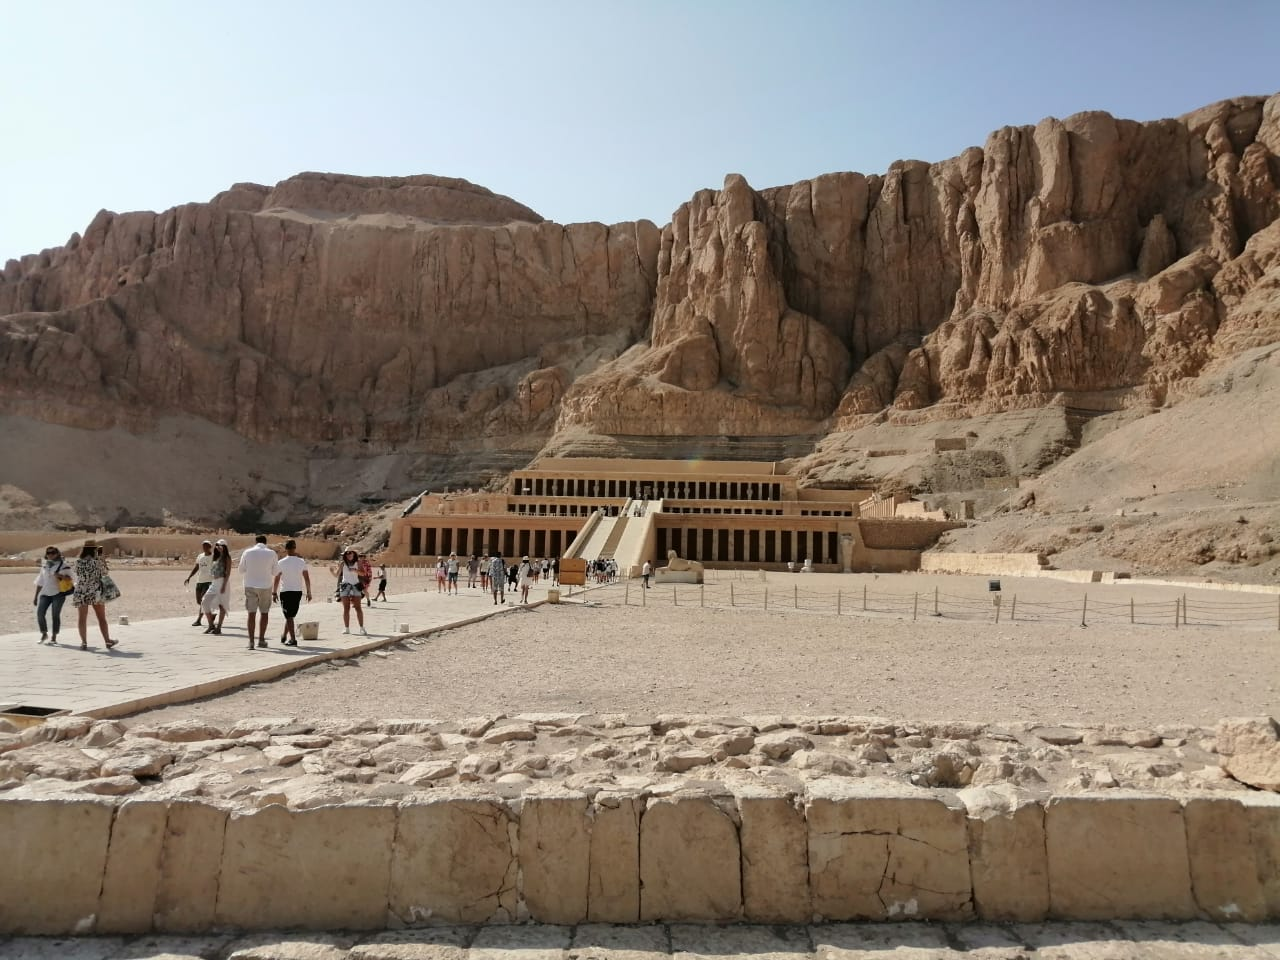 Hatshepsut temple excursion from Hurghada